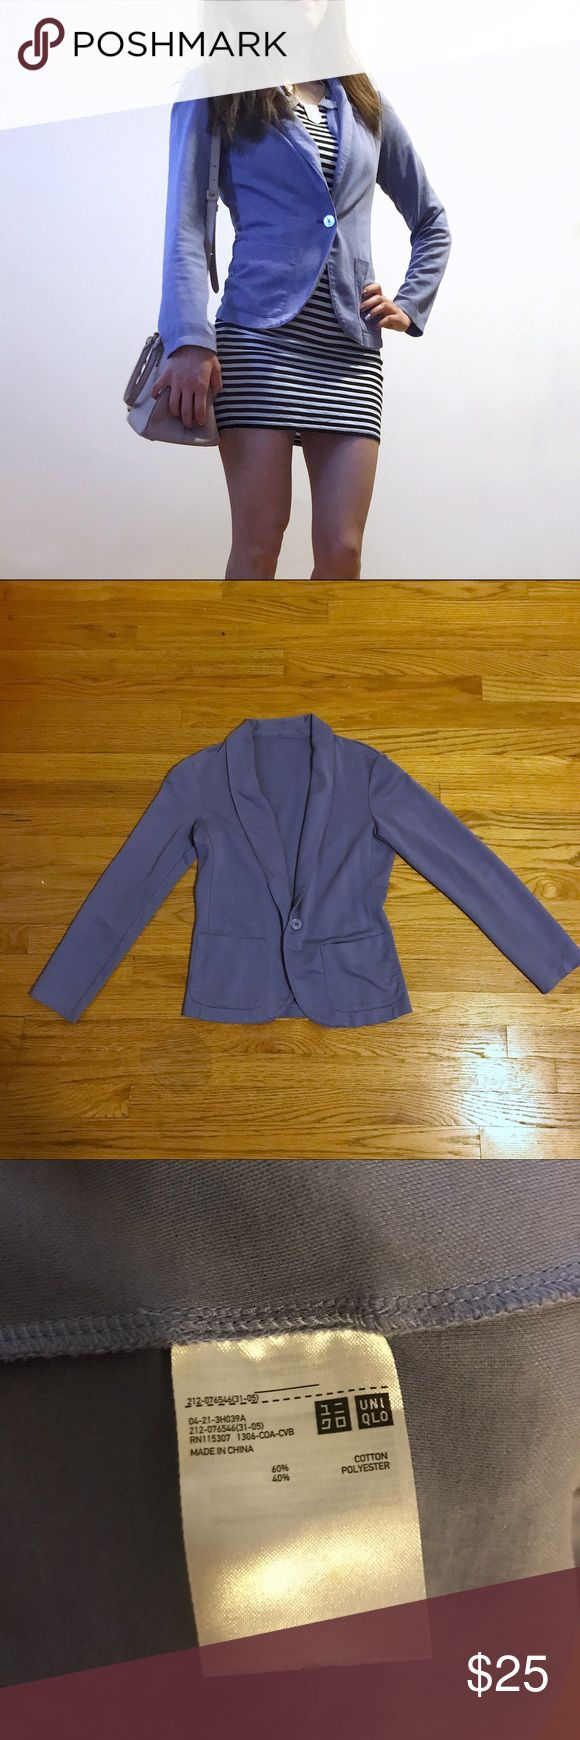 Uniqlo relaxed cotton blazer periwinkle light blue Light summer blazer, perfect for business casual or going out. Worn a couple of times. No defects or wear.  🙅🏻 trades 🙅🏻offline transactions Uniqlo Jackets & Coats Blazers